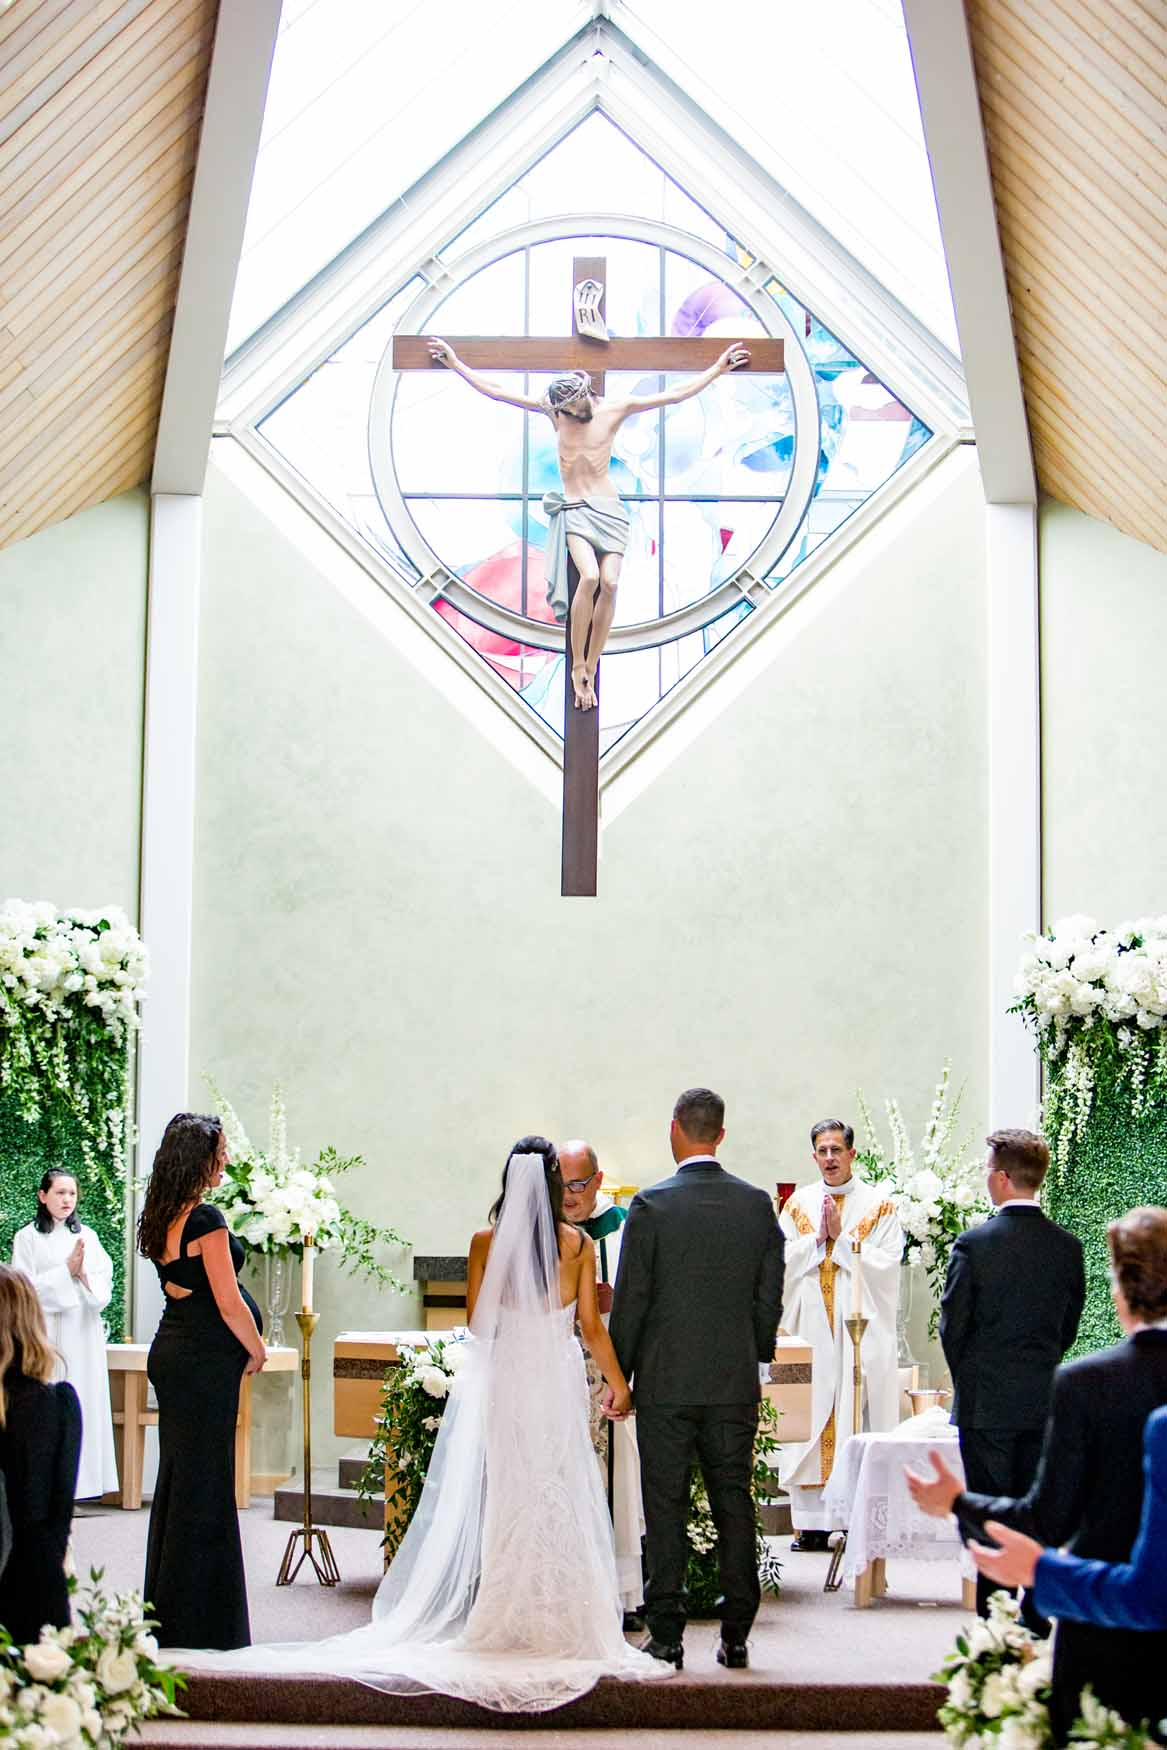 Bride and groom getting married at church - Elegant Summer Private Estate Wedding. Flora Nova Design Seattle